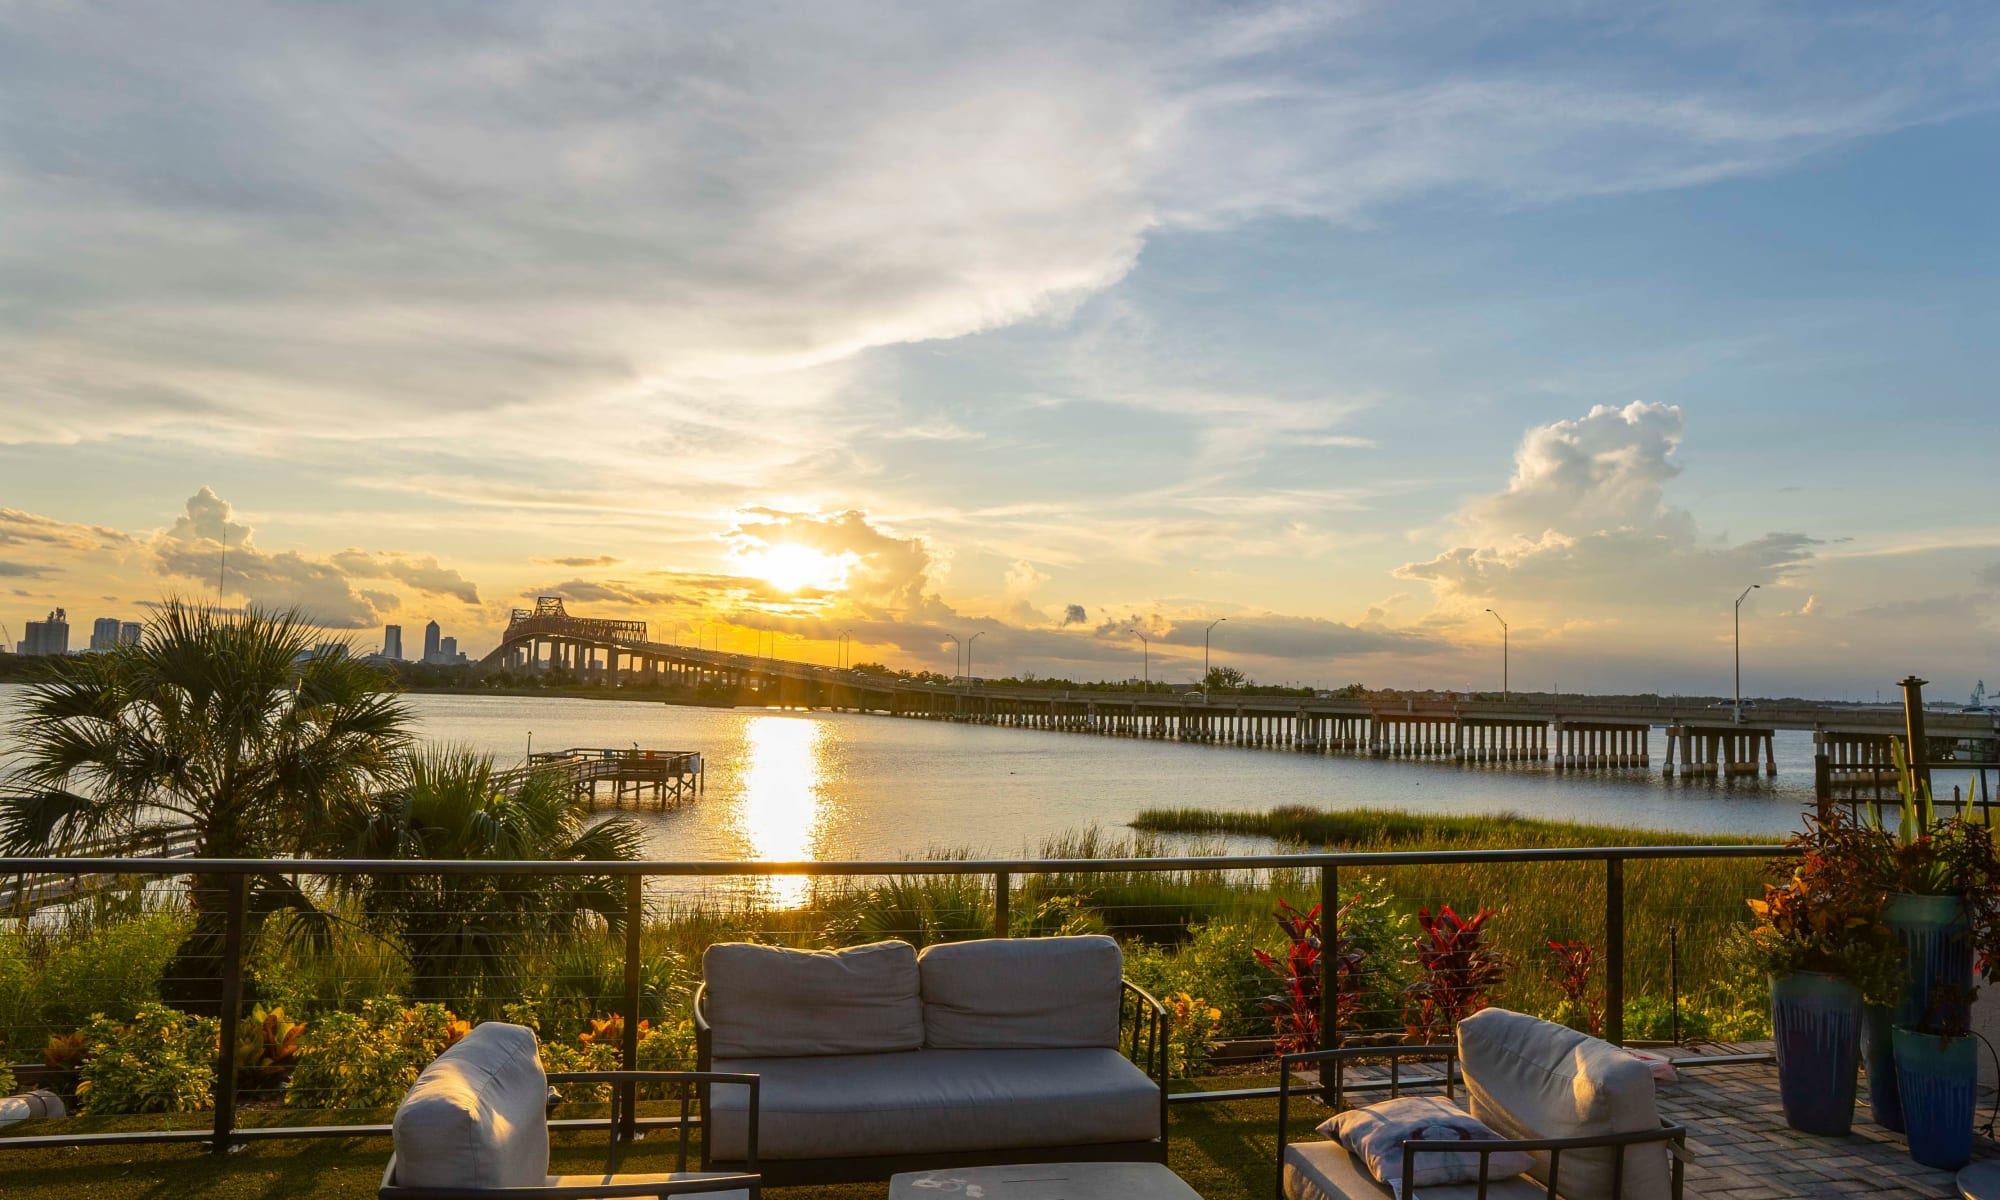 Apartments at Pier 5350 in Jacksonville, Florida